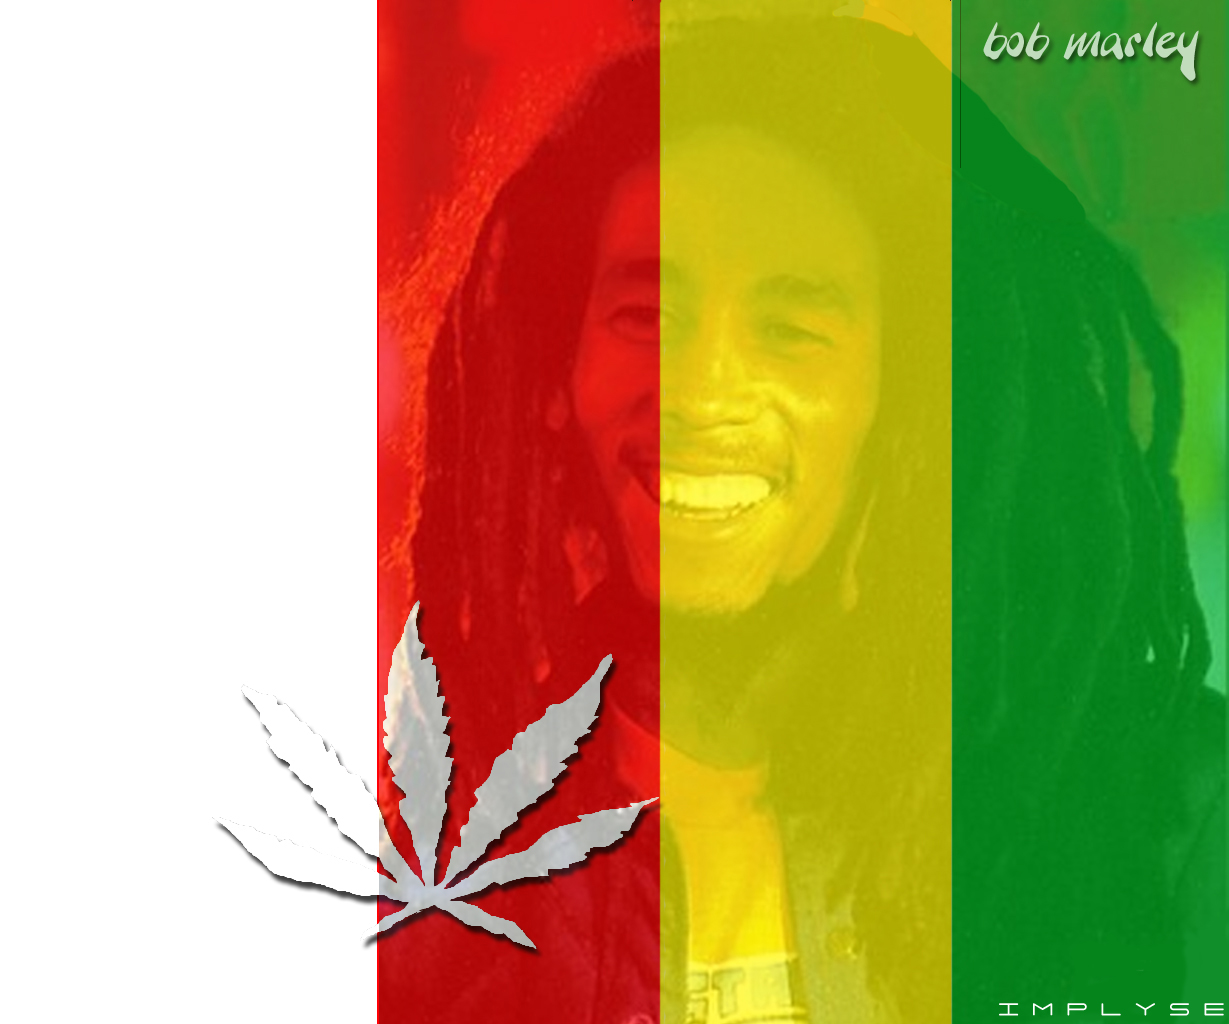 Bob Marley Wallpaper By Implyse On Deviantart